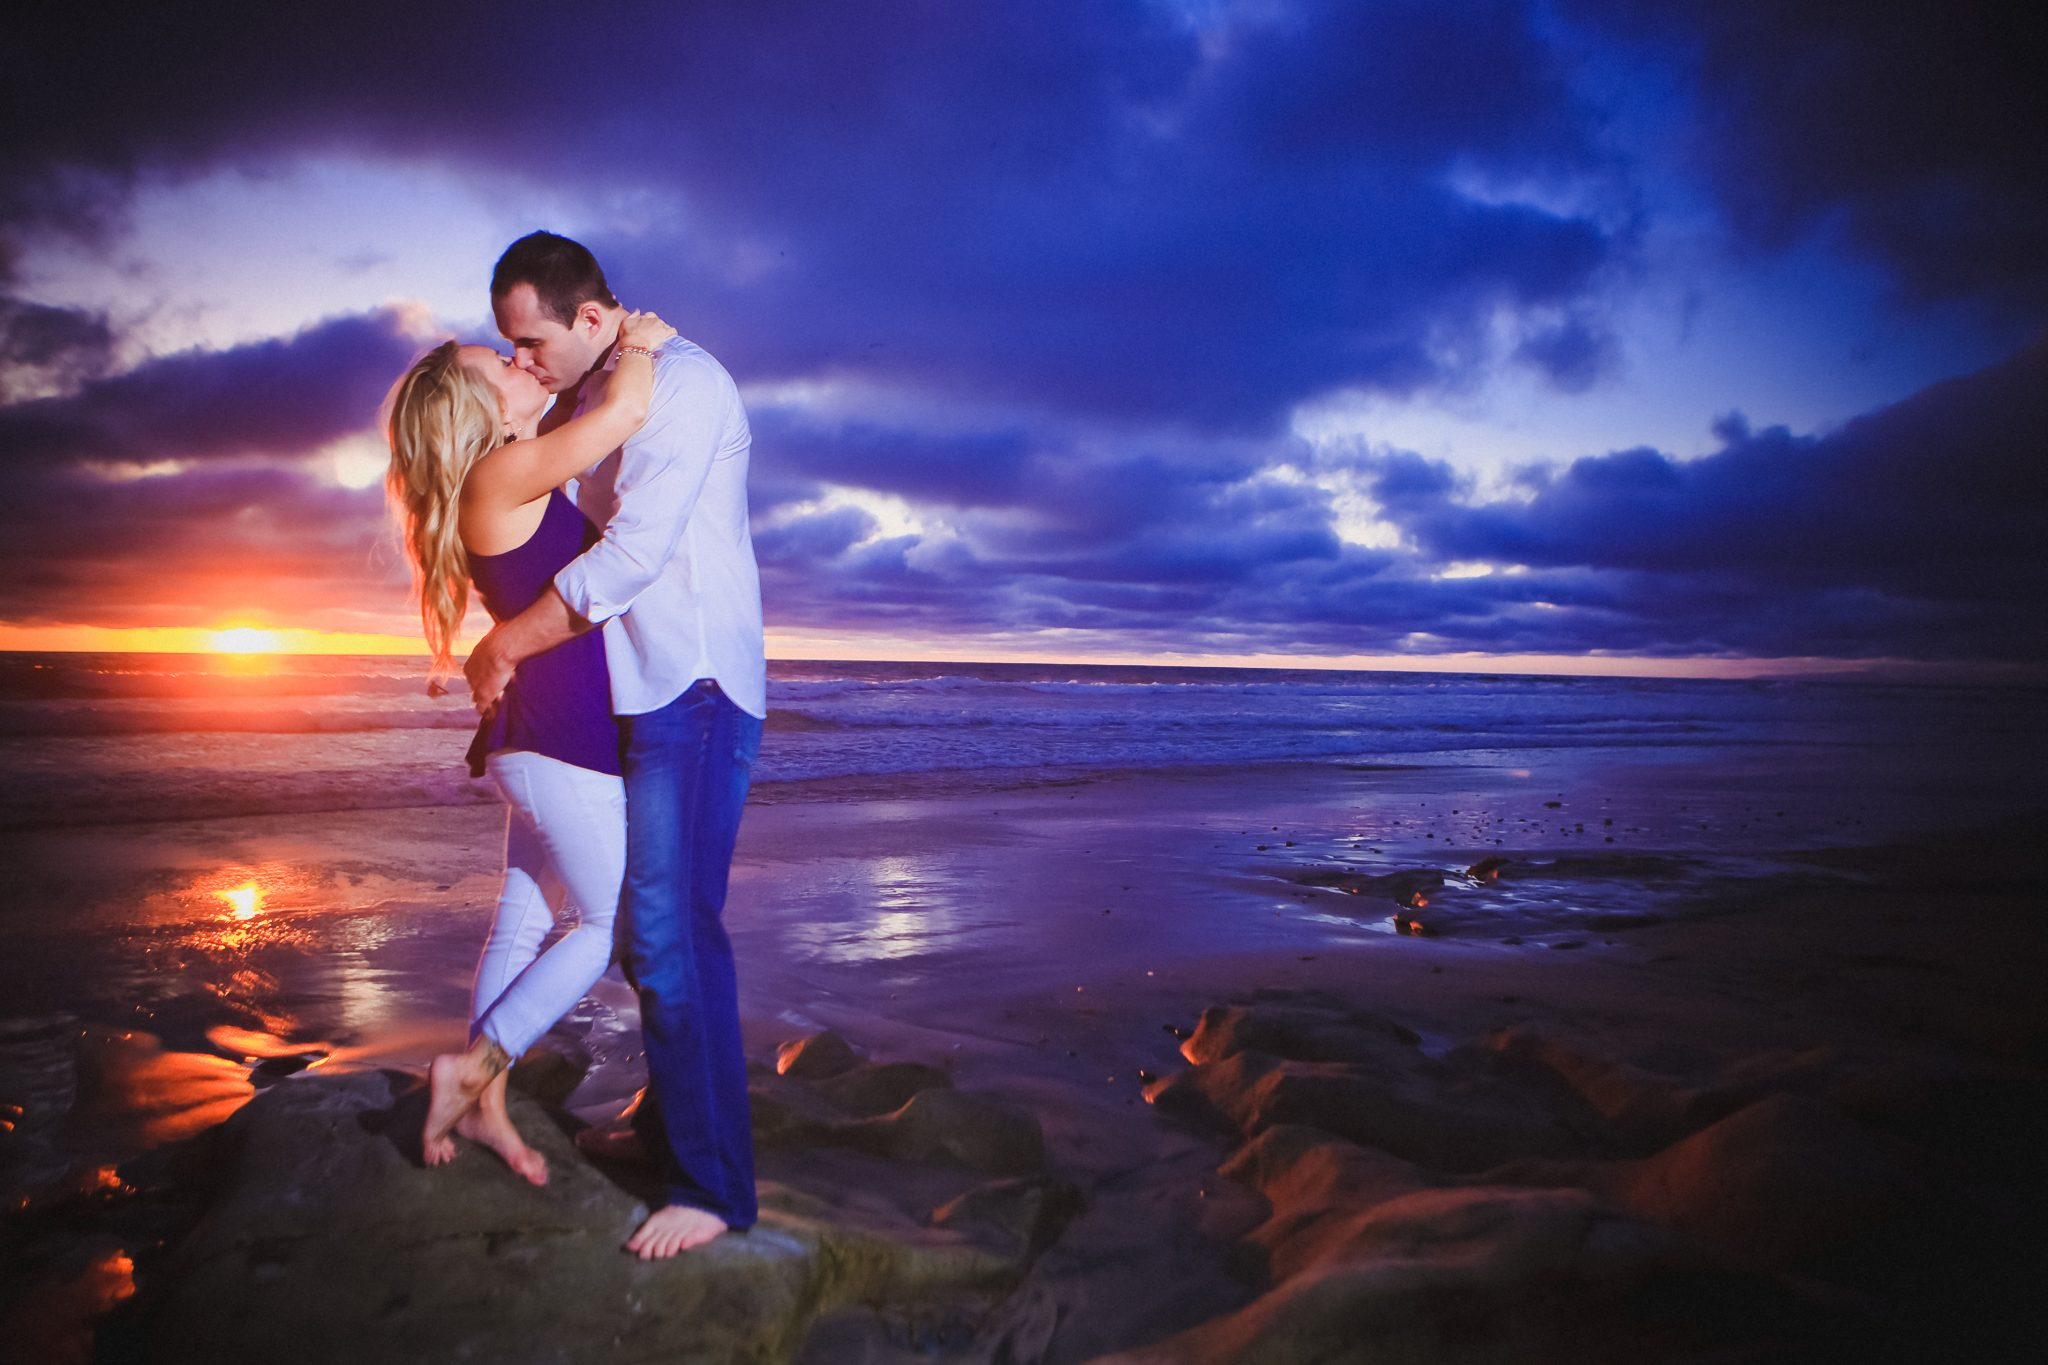 Dramatic sunset during engagement shoot in La Jolla